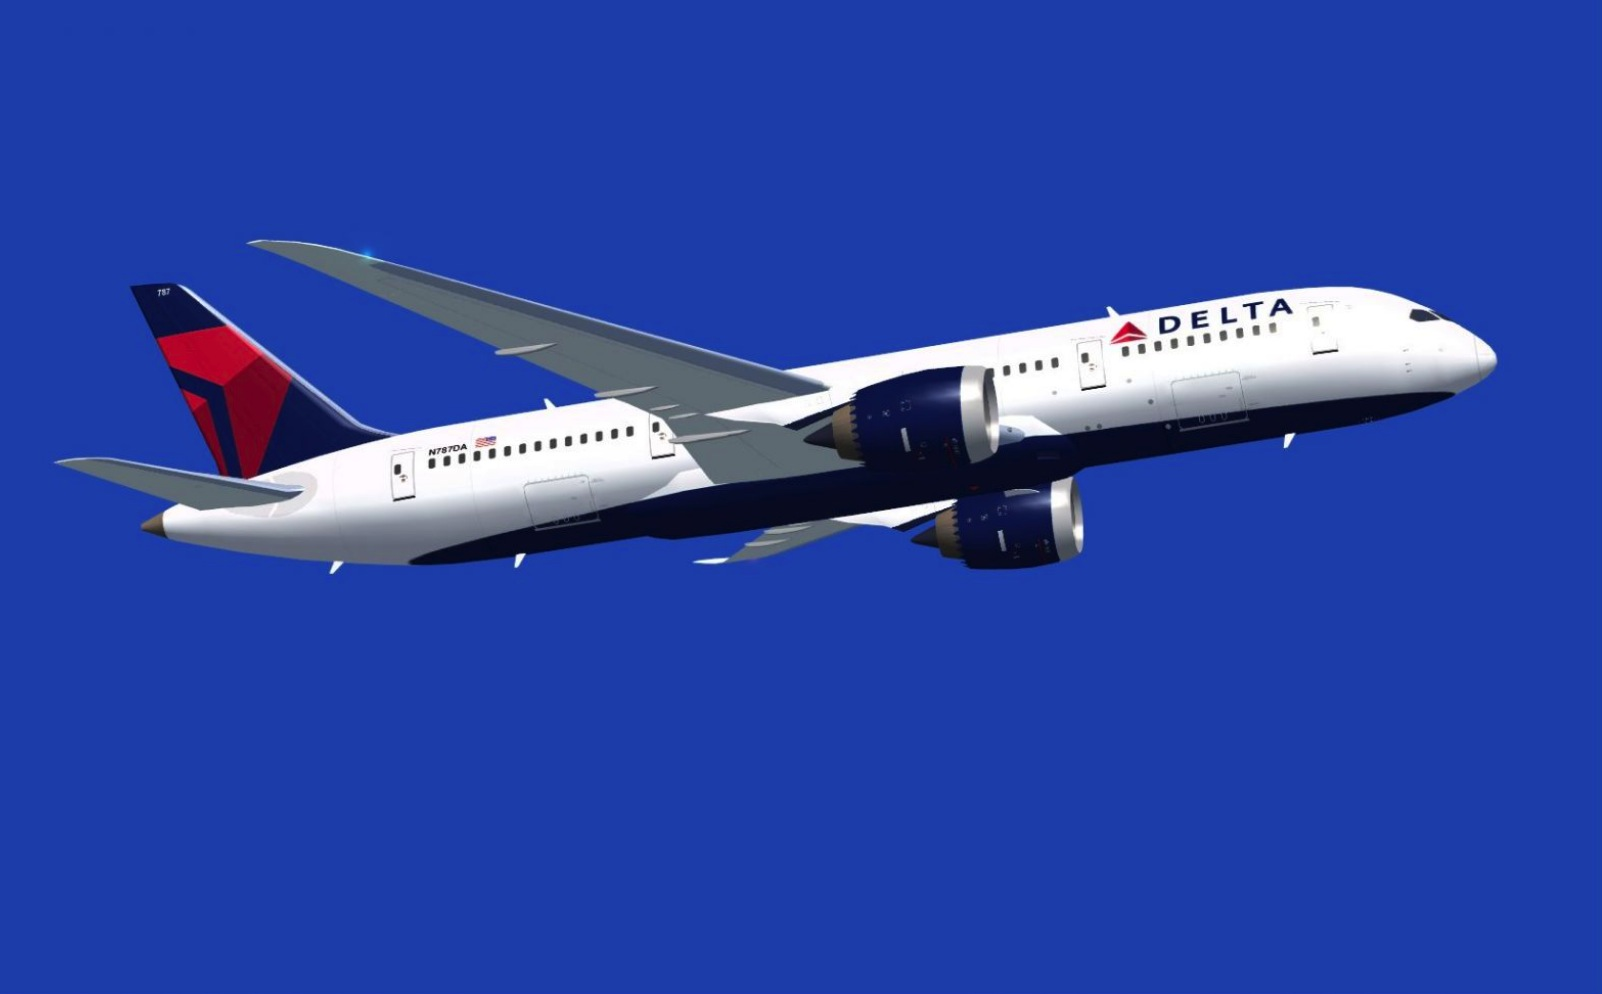 Delta Air Lines Suffers Global Outage Customers Take To